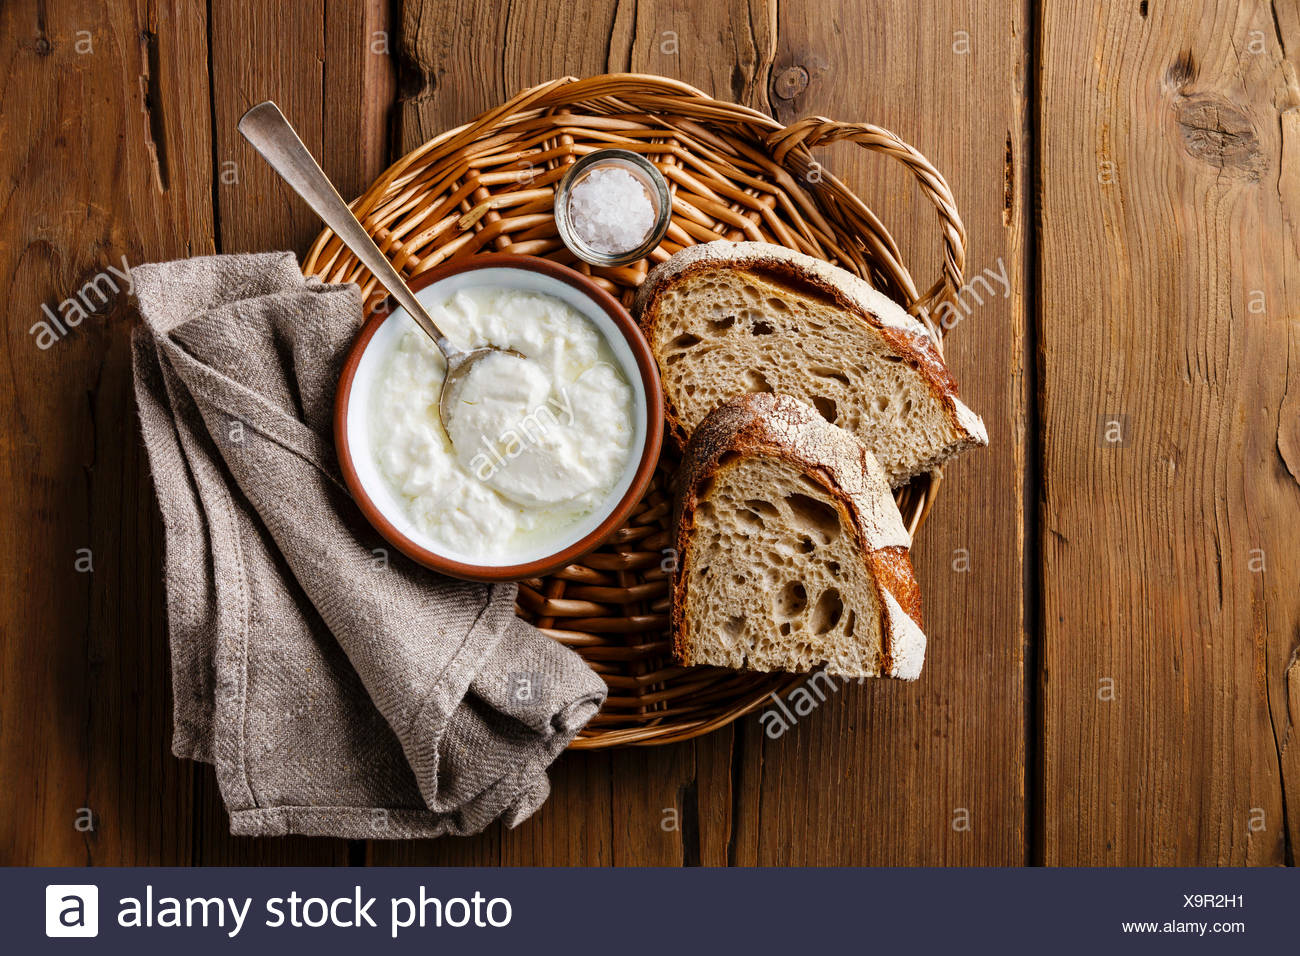 Clabber sour milk and brown rye bread on wicker tray on wooden background - Stock Image